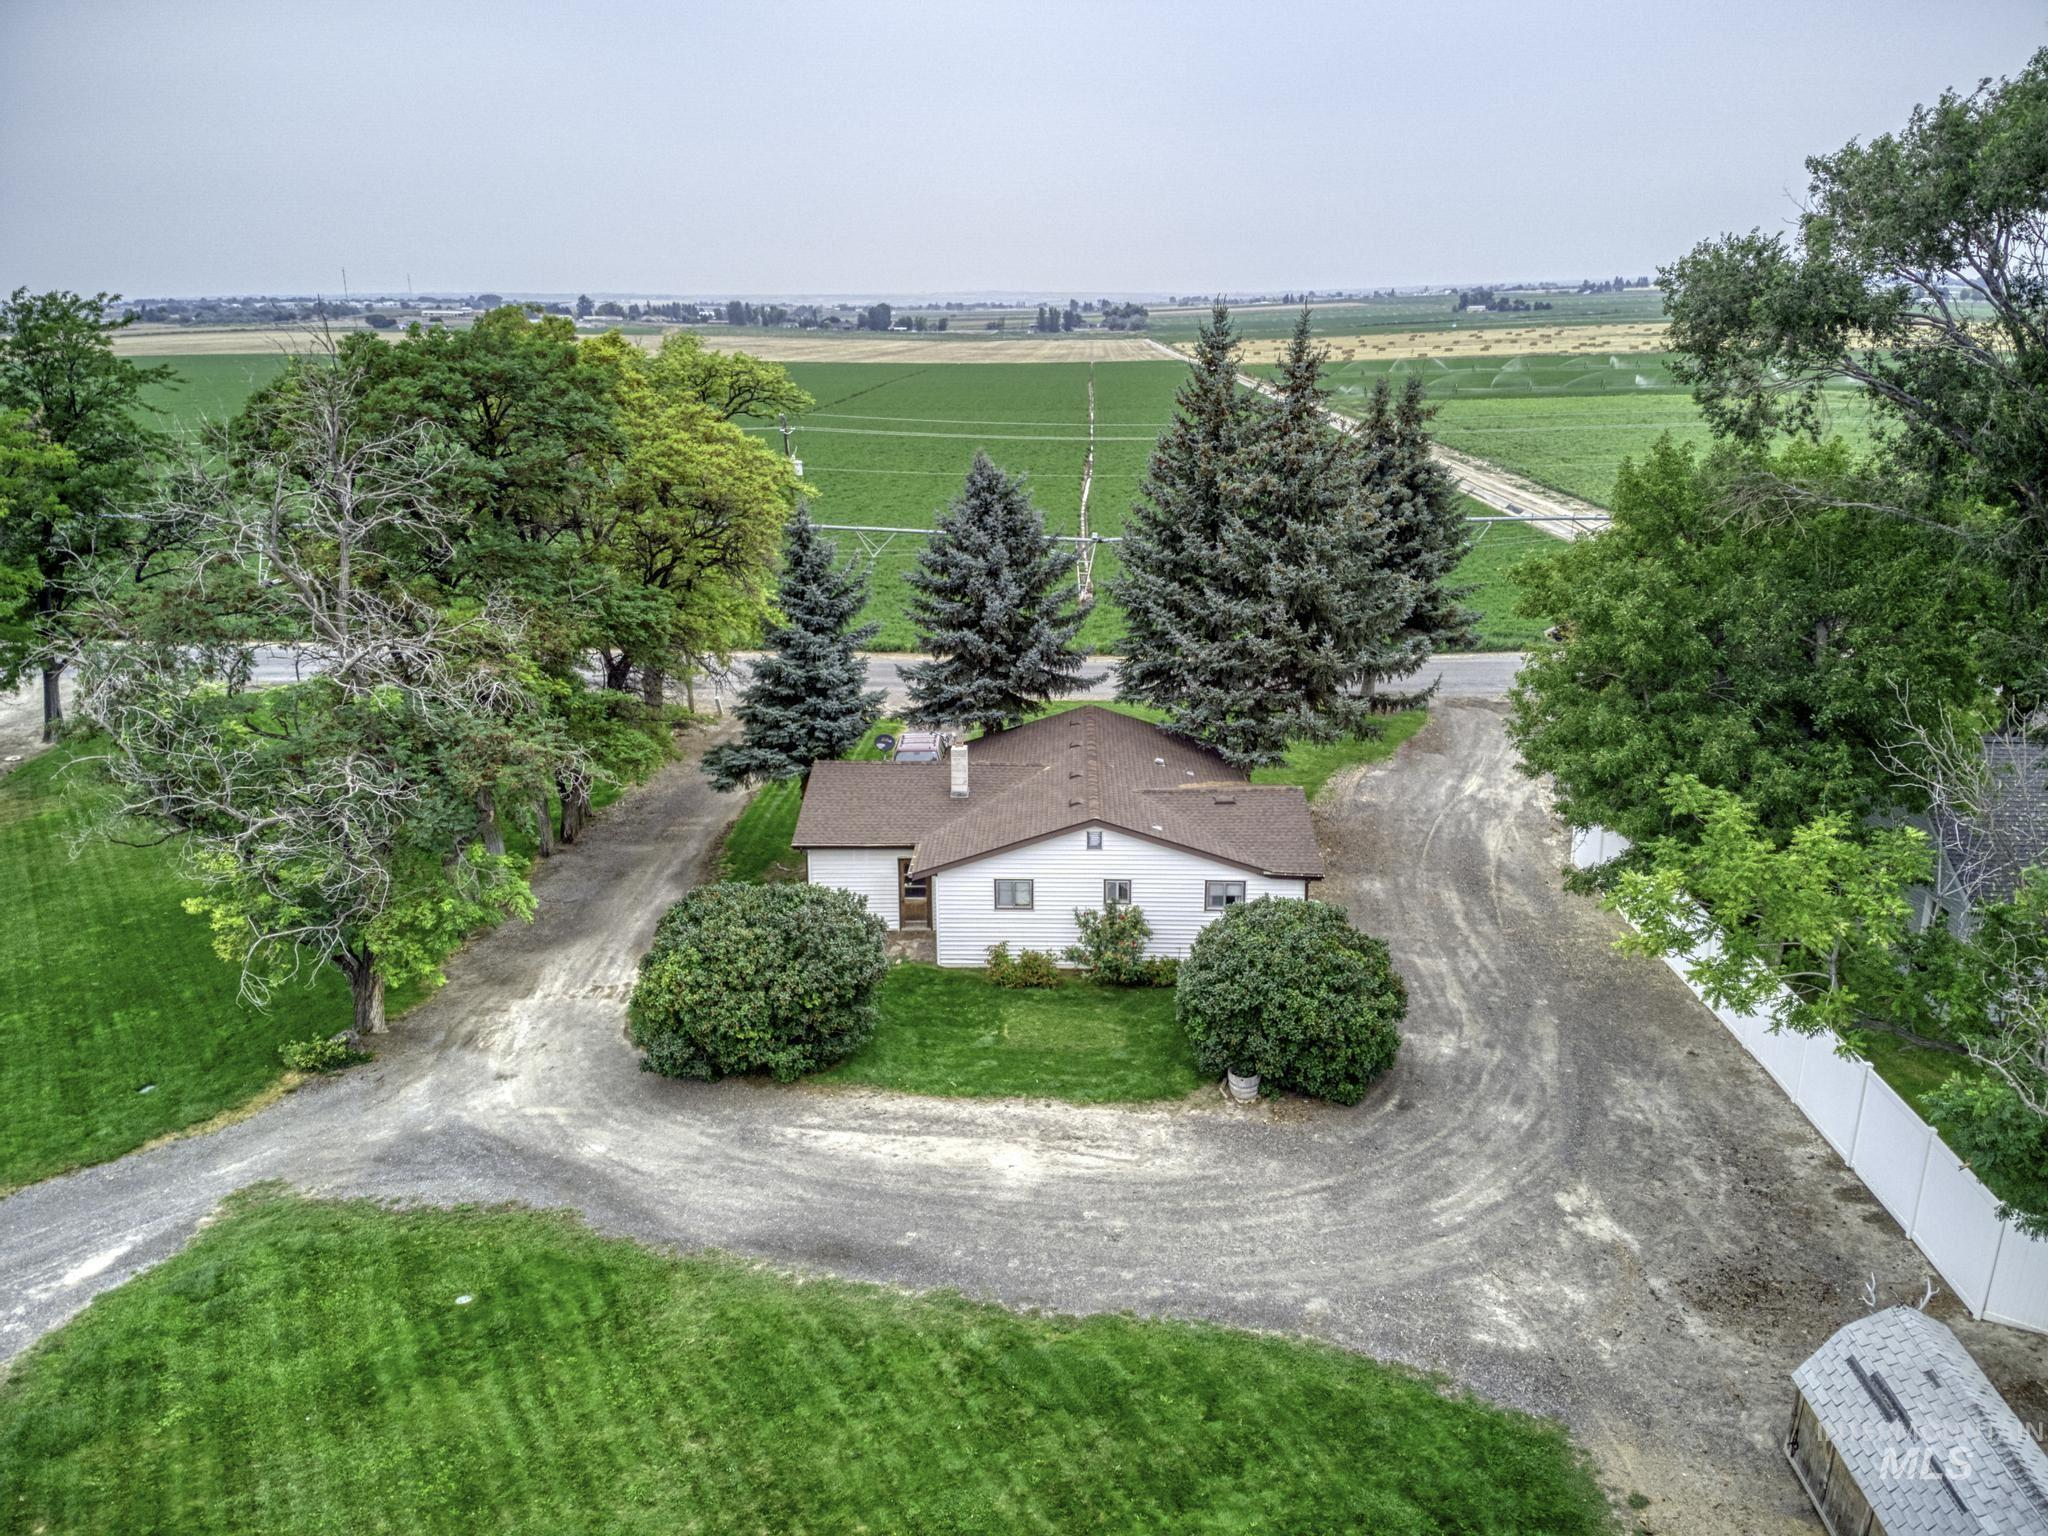 """HERE'S A WINNING OPPORTUNITY to purchase a """"Gold Medallion"""" FIXER-UPPER home with a newer 36 x 30 shop, gorgeous country views and NO CCR'S There is also an oversized bully barn on the property and room for pasture in front of the shop. The electrical is breakers, vinyl siding, newer roof, newer well, pressure tank, septic system, and auto sprinklers. HOME IS BEING SOLD """"AS IS"""" to settle an estate. Buyers to be responsible for all repairs. Cash or conventional financing will be required. - Cindy L Collins, Voice: 208-280-5336, Berkshire Hathaway HomeServices Idaho Homes & Properties, Main: 208-733-5336, https://www.thecollinsconnection.com"""